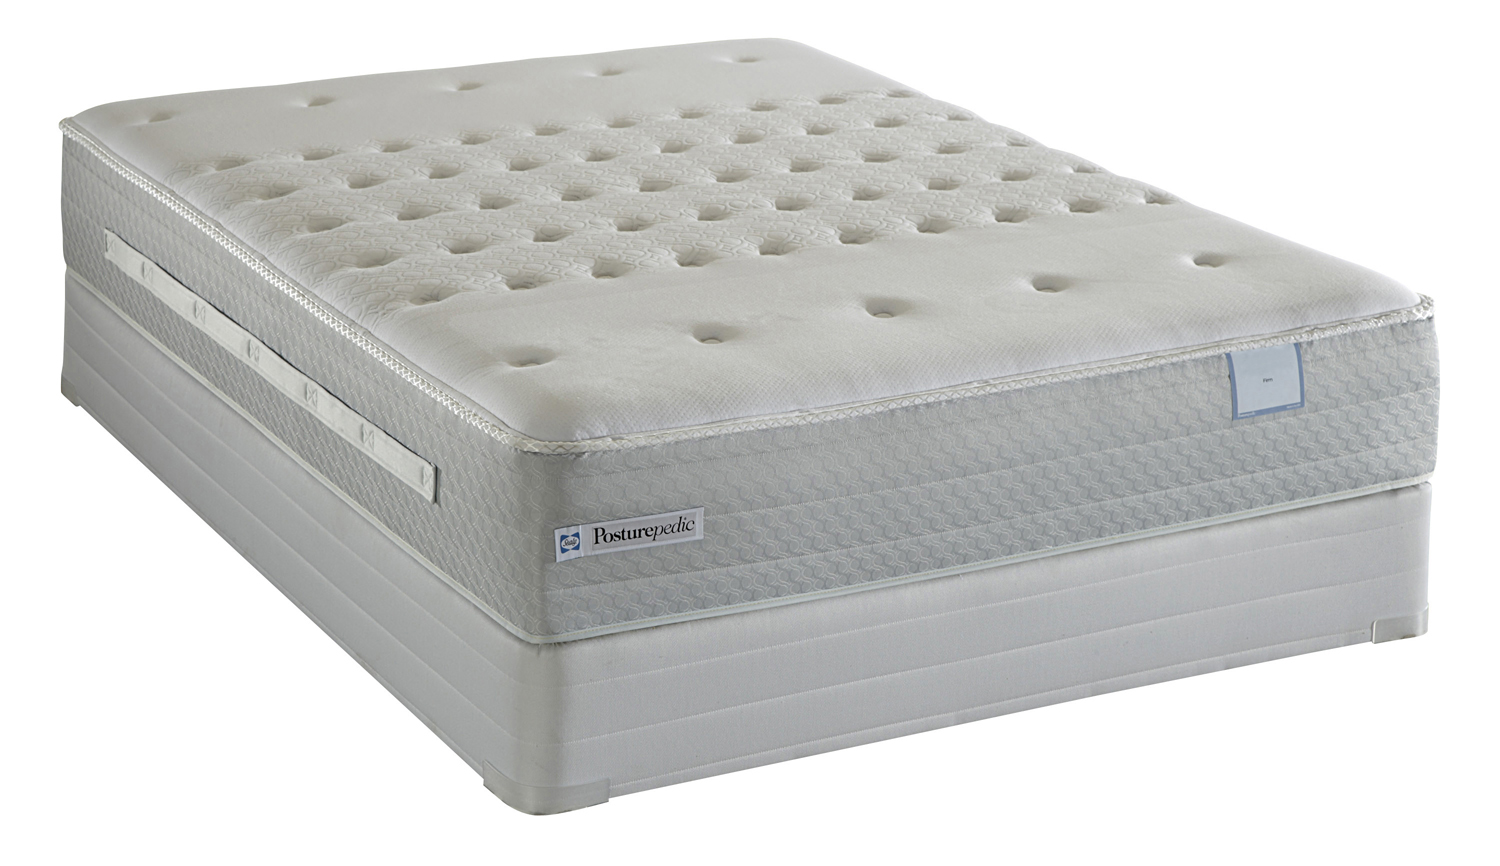 sealy posturepedic cushion firm mattress